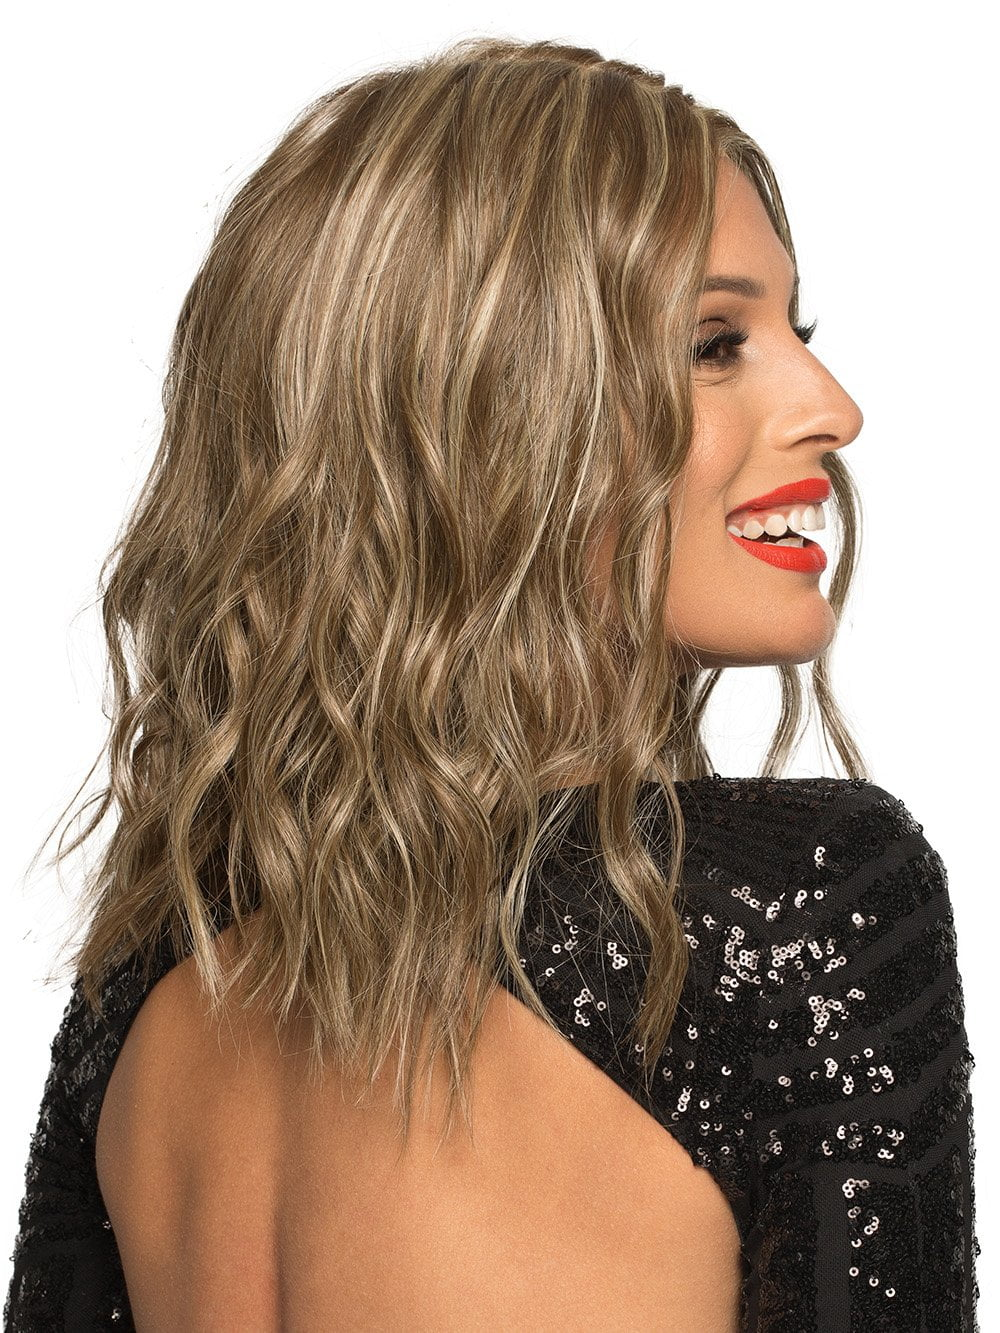 Chelsea by Envy is a timeless elegance that abounds with this classic, shoulder-length style. Made from a blend of 30% human hair with 70% heat-friendly fiber.